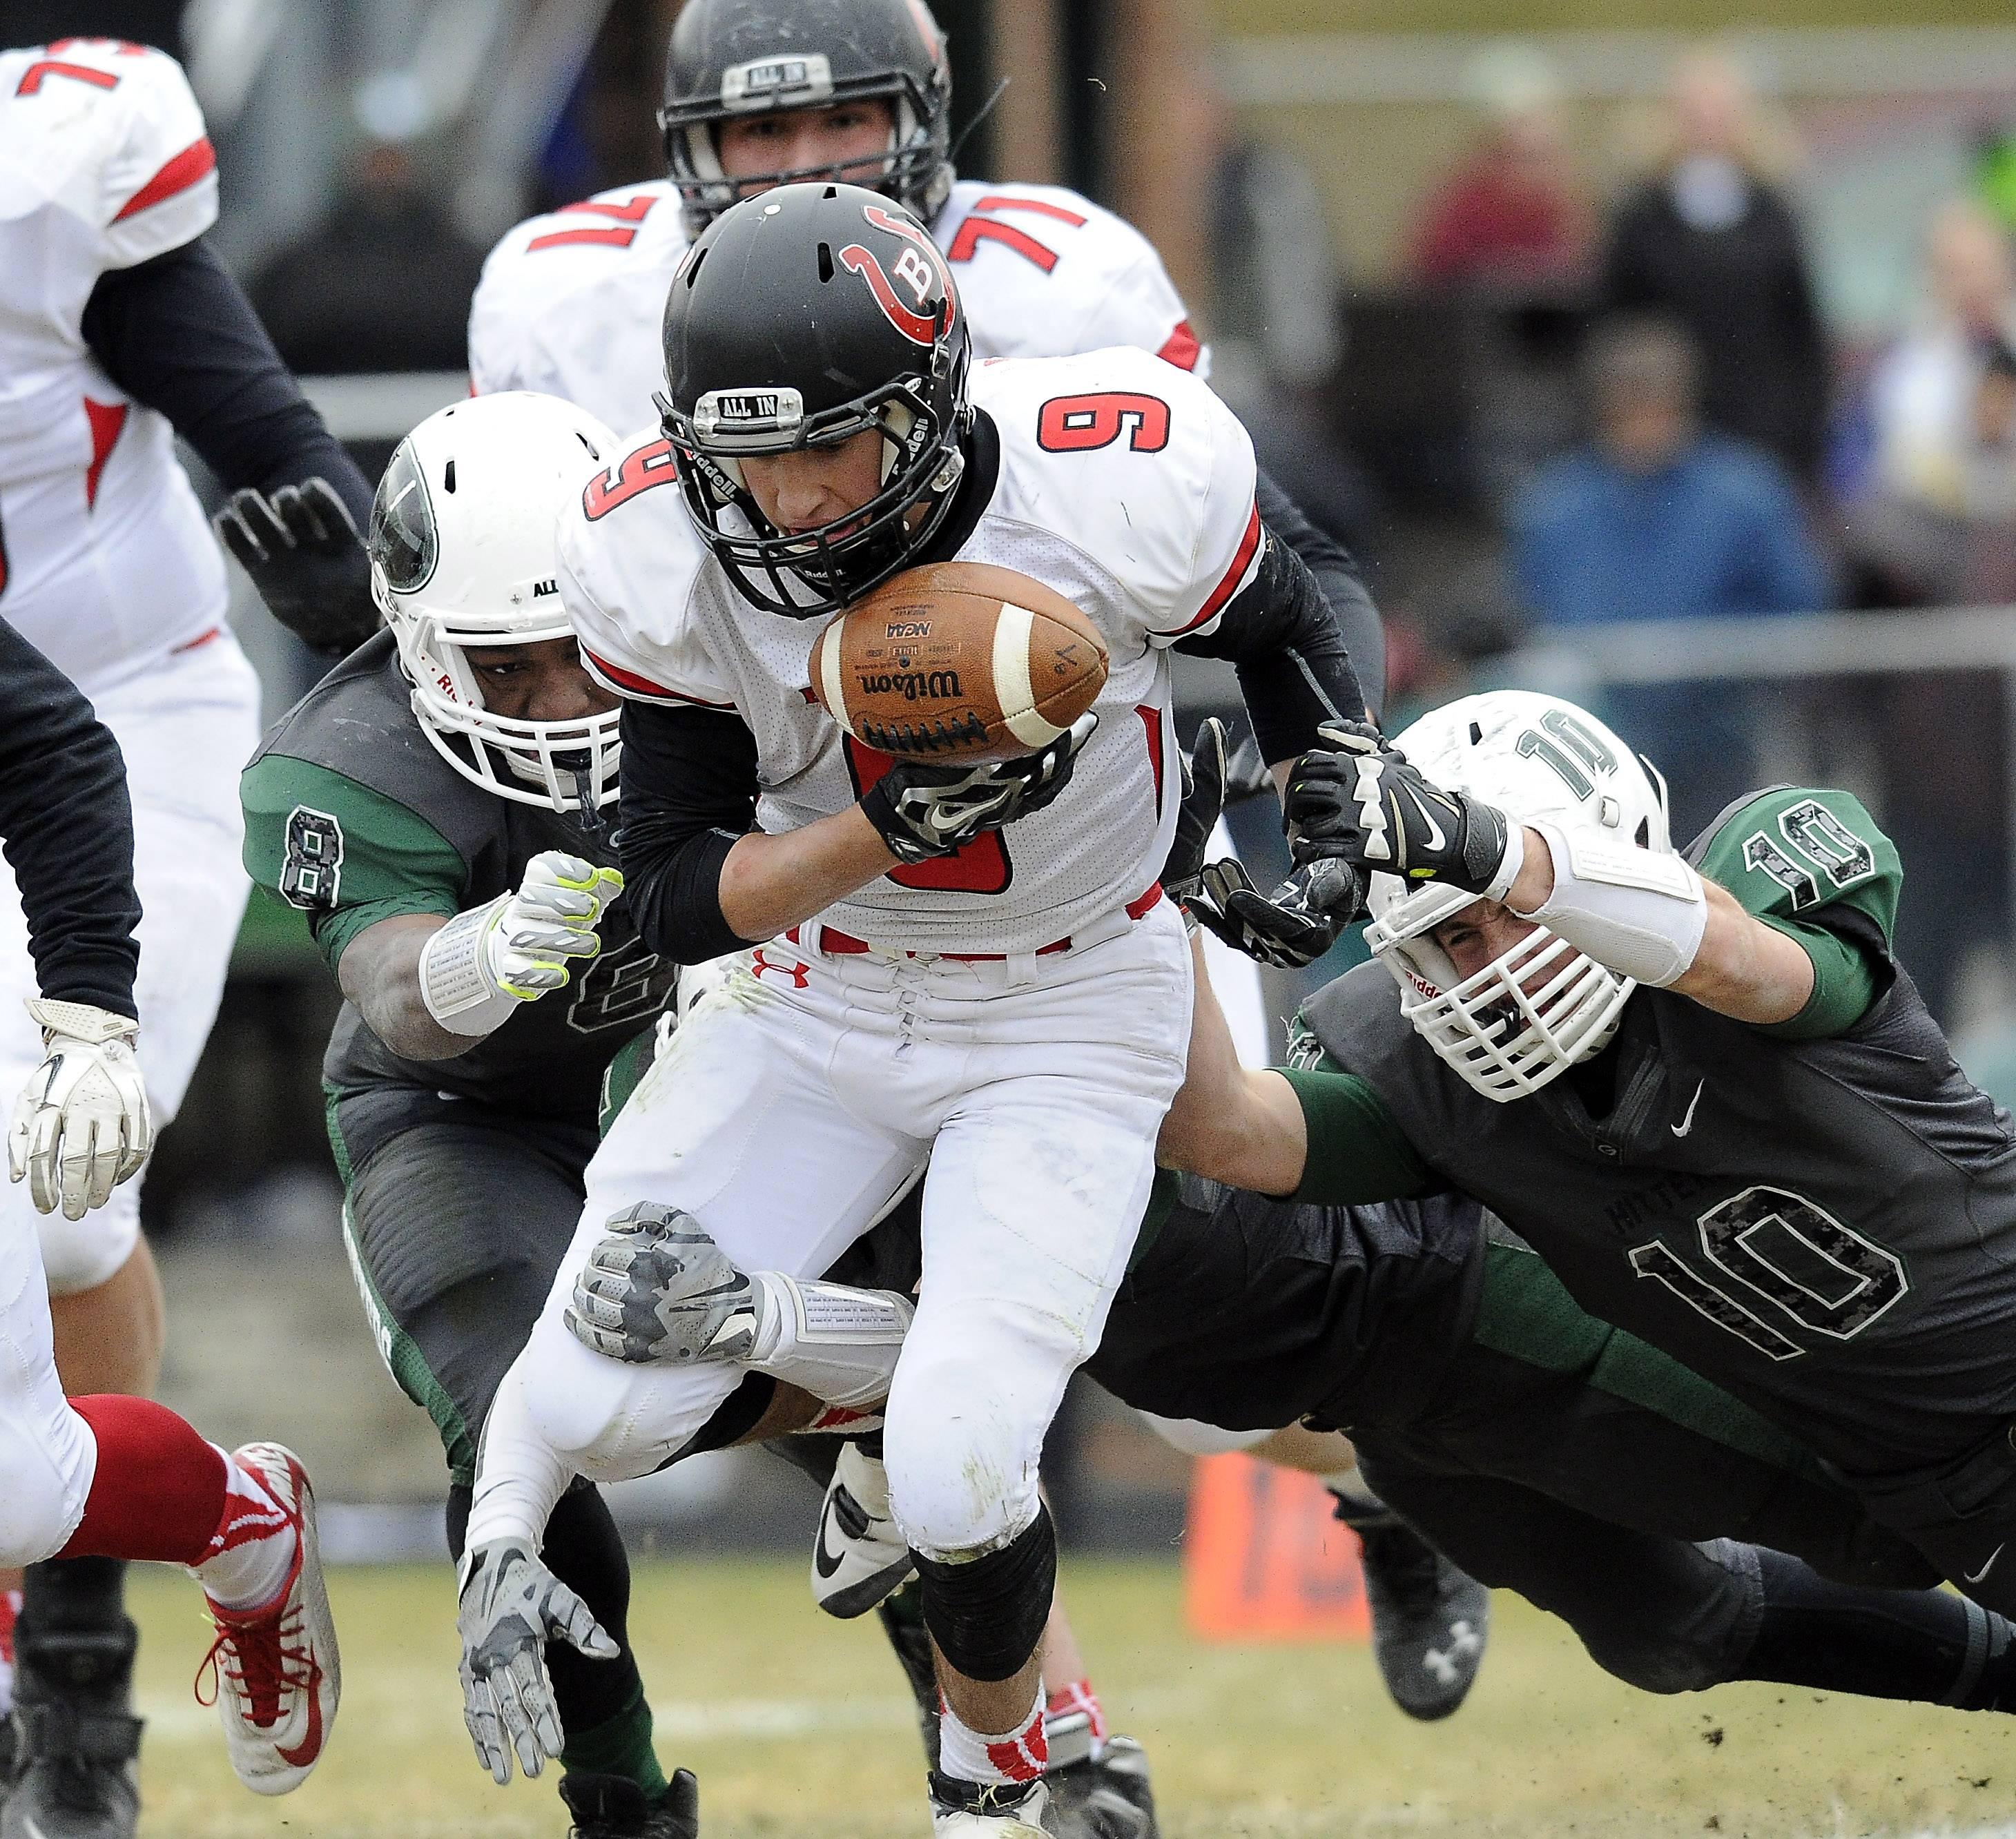 Barrington quarterback Johnny Davidson takes pressure from Glenbard West's defense during Class 8A playoff action last fall in Glen Ellyn.